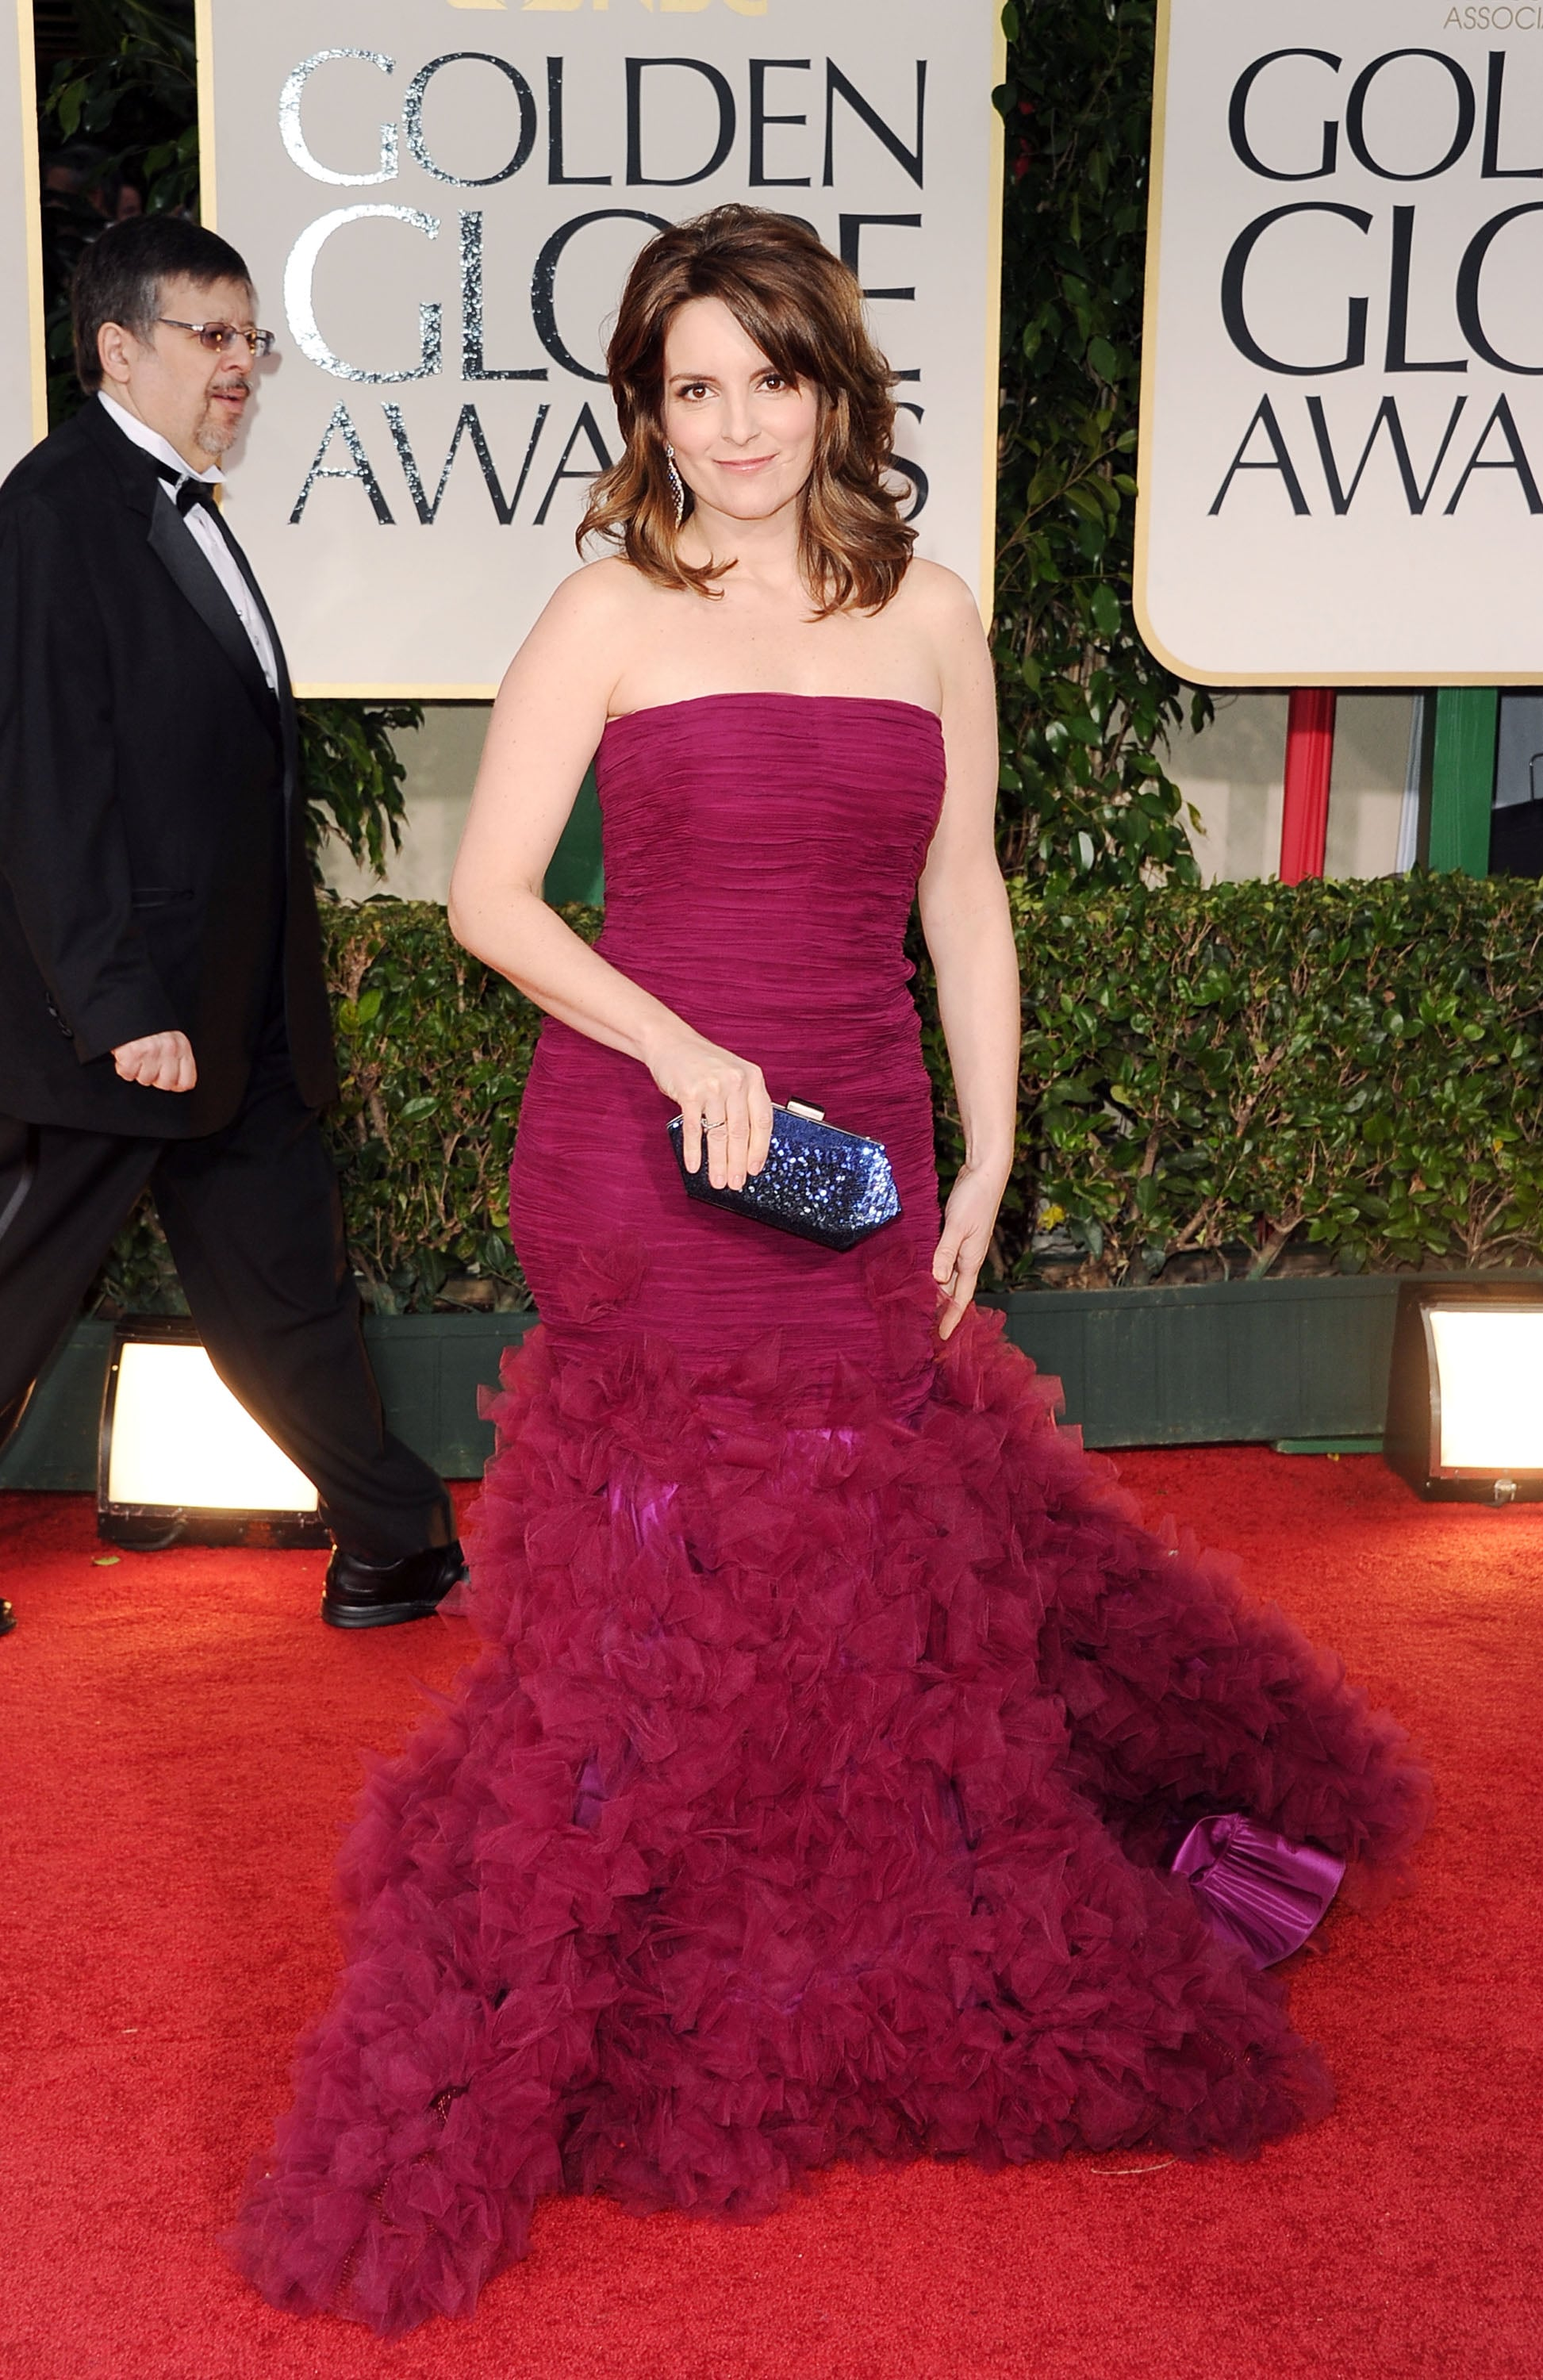 Golden globes 2012 red carpet dress pictures popsugar celebrity - Golden globes red carpet ...